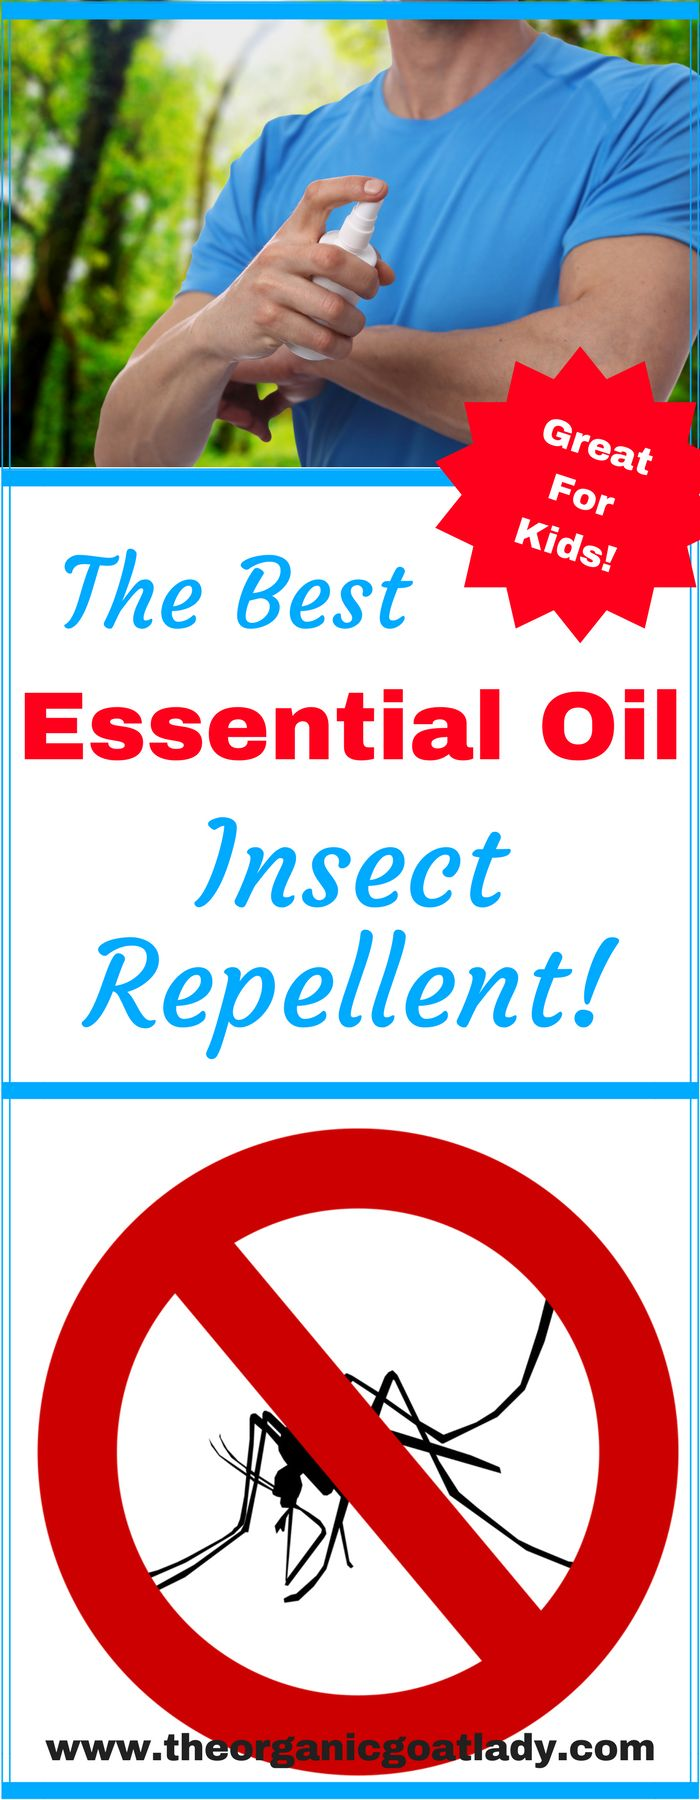 The Best Essential Oil Insect Repellent!